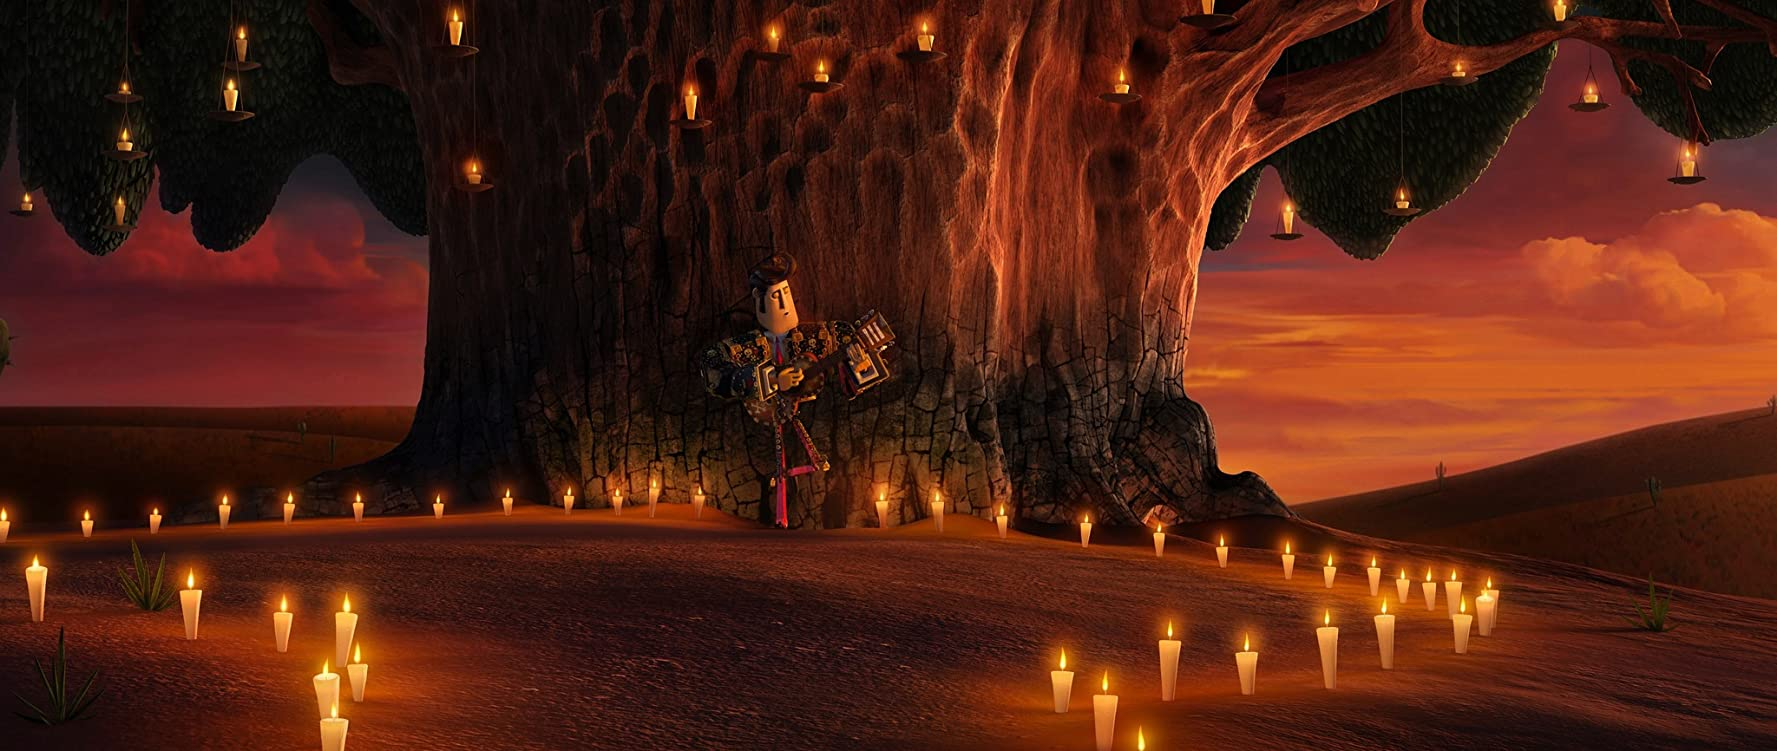 Diego Luna in The Book of Life (2014)